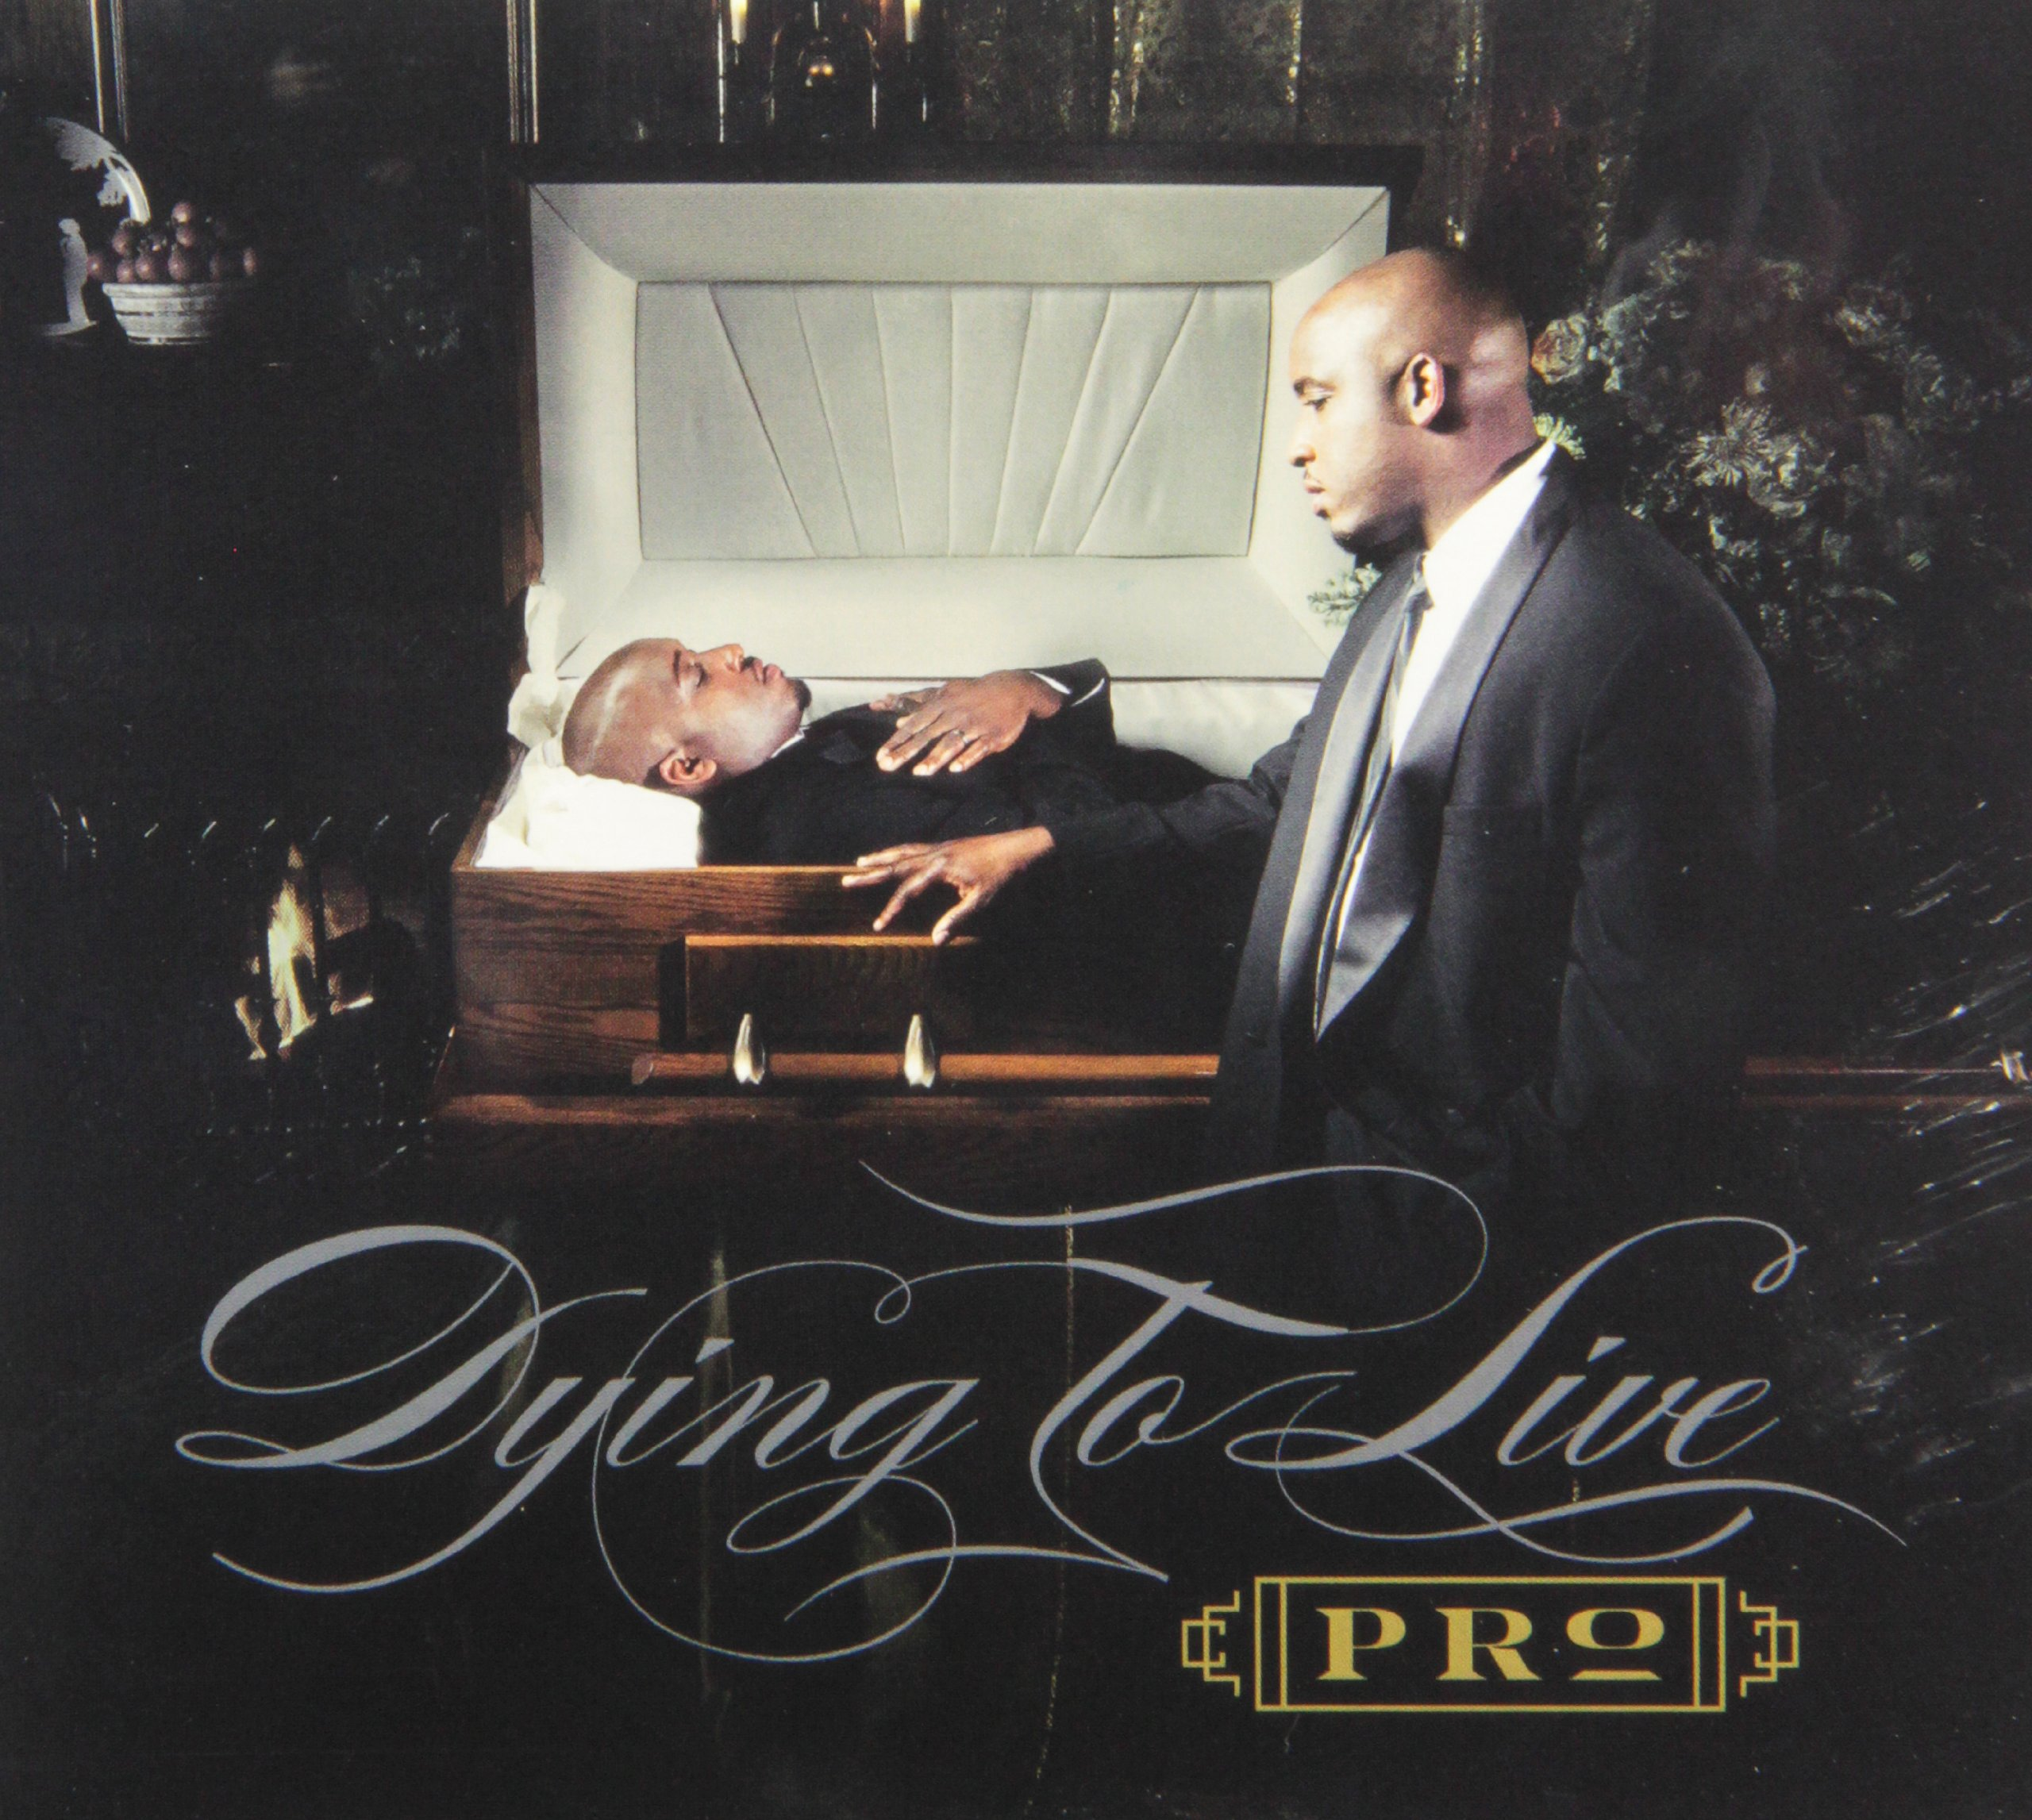 Dying to Live by Reach Records